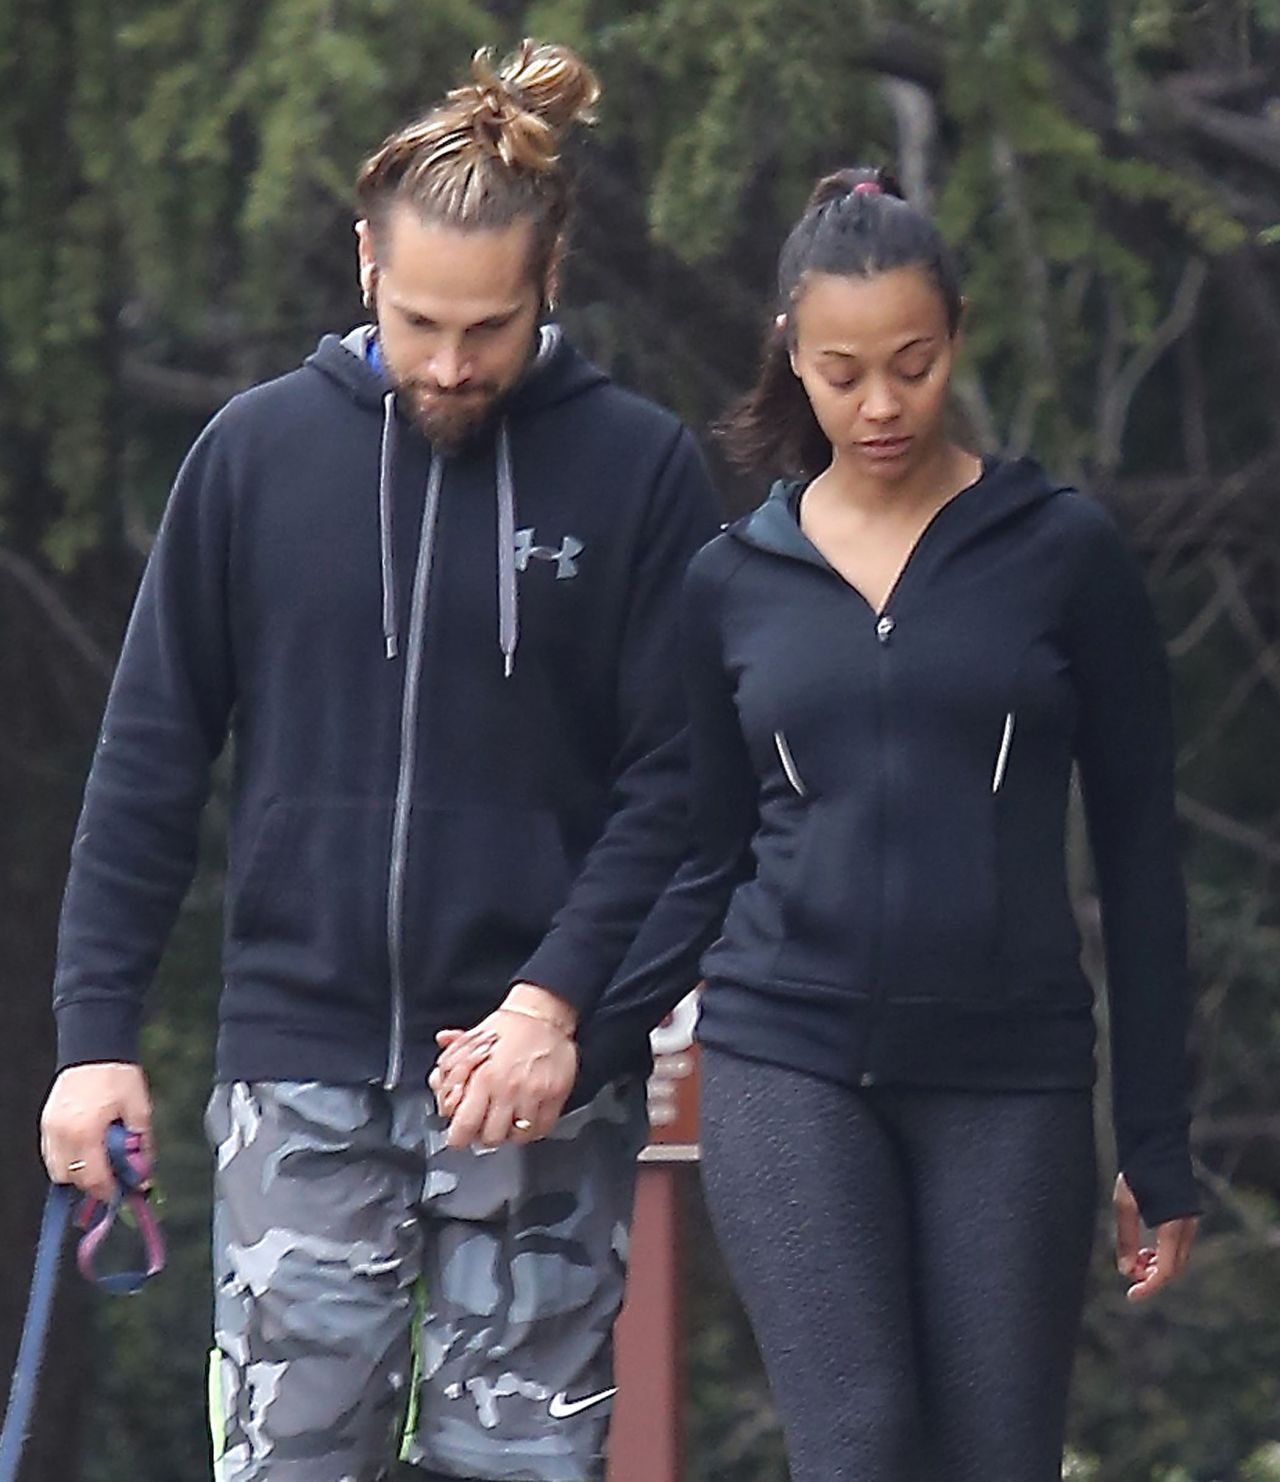 Zoe Saldana Hiking With Her Husband in Beverly Hills, March 2015